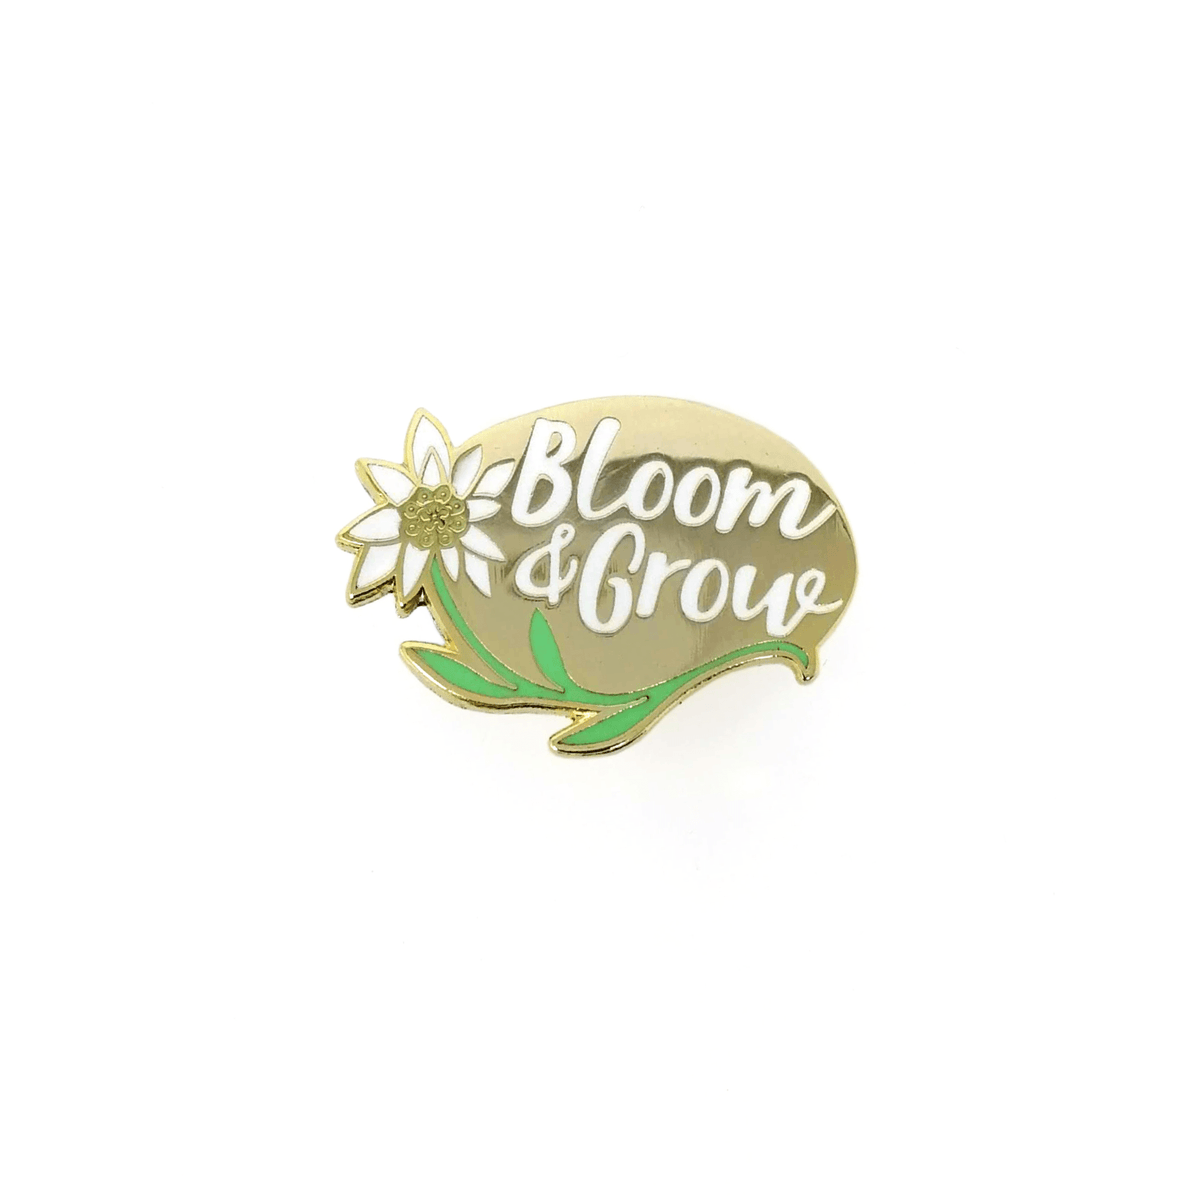 Bloom And Grow Hard Enamel Pin by Mary Joy Harris - Whale and Bird